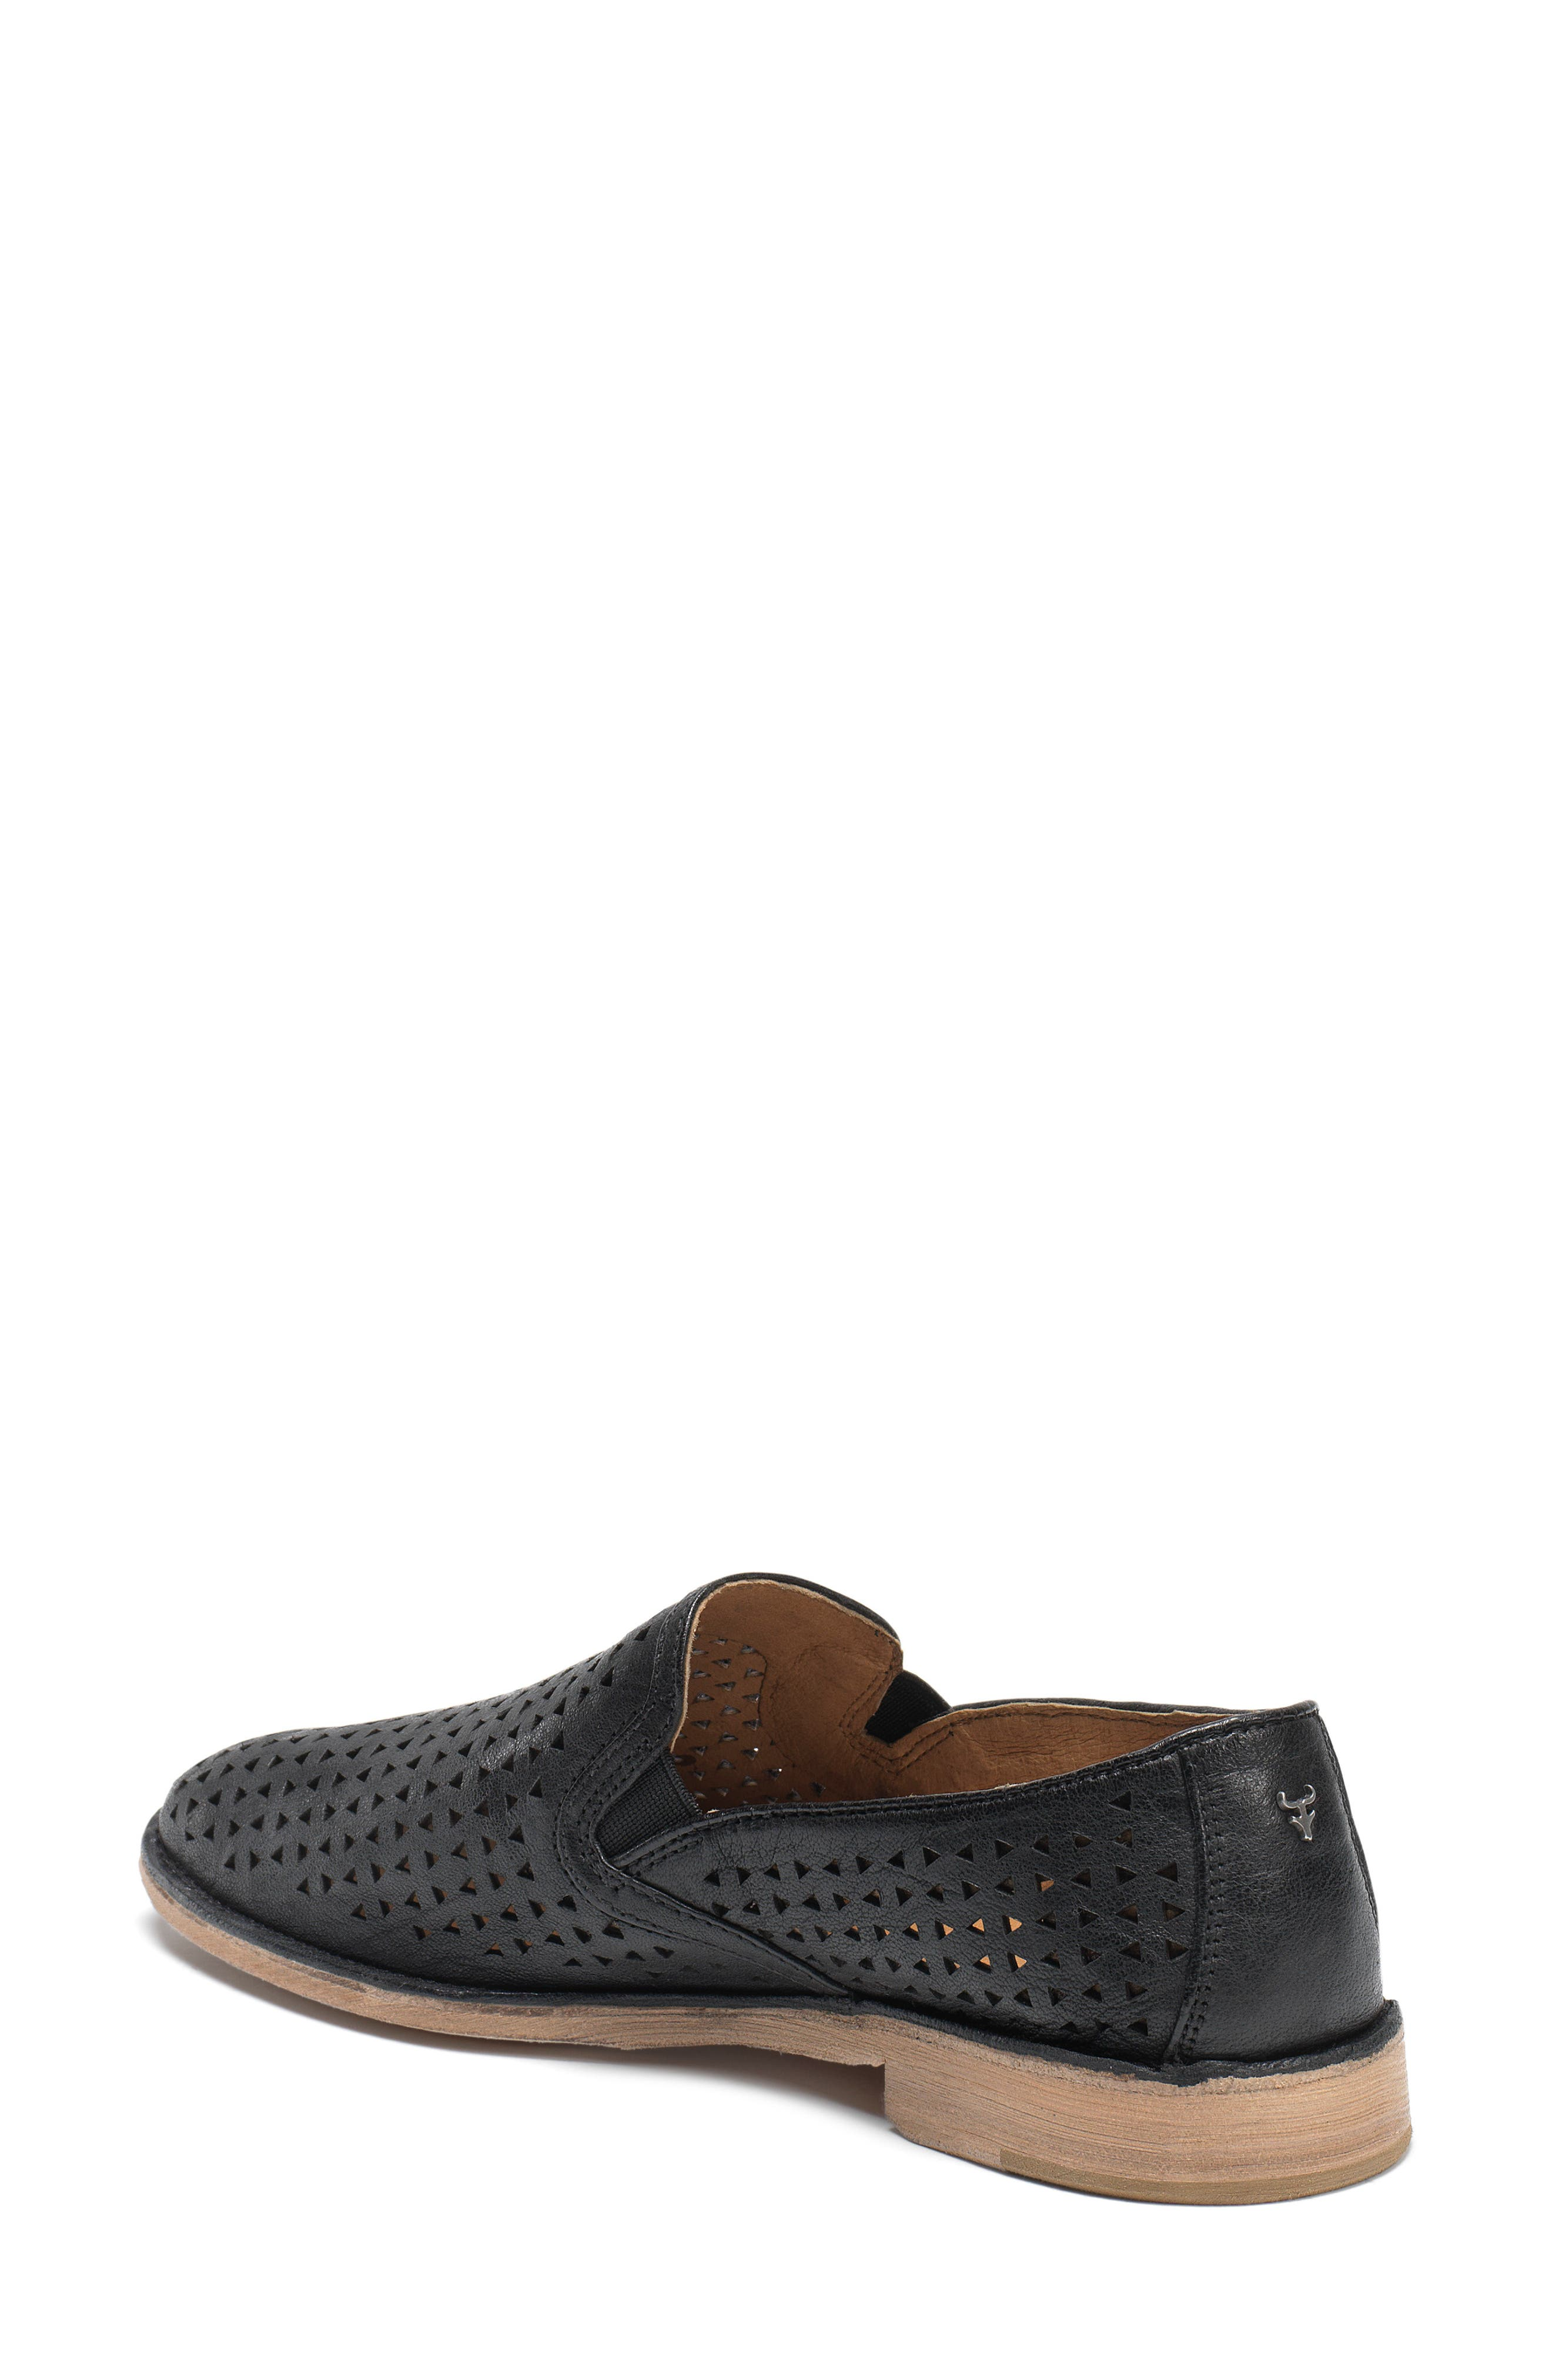 'Ali' Perforated Loafer,                             Alternate thumbnail 2, color,                             Black Leather